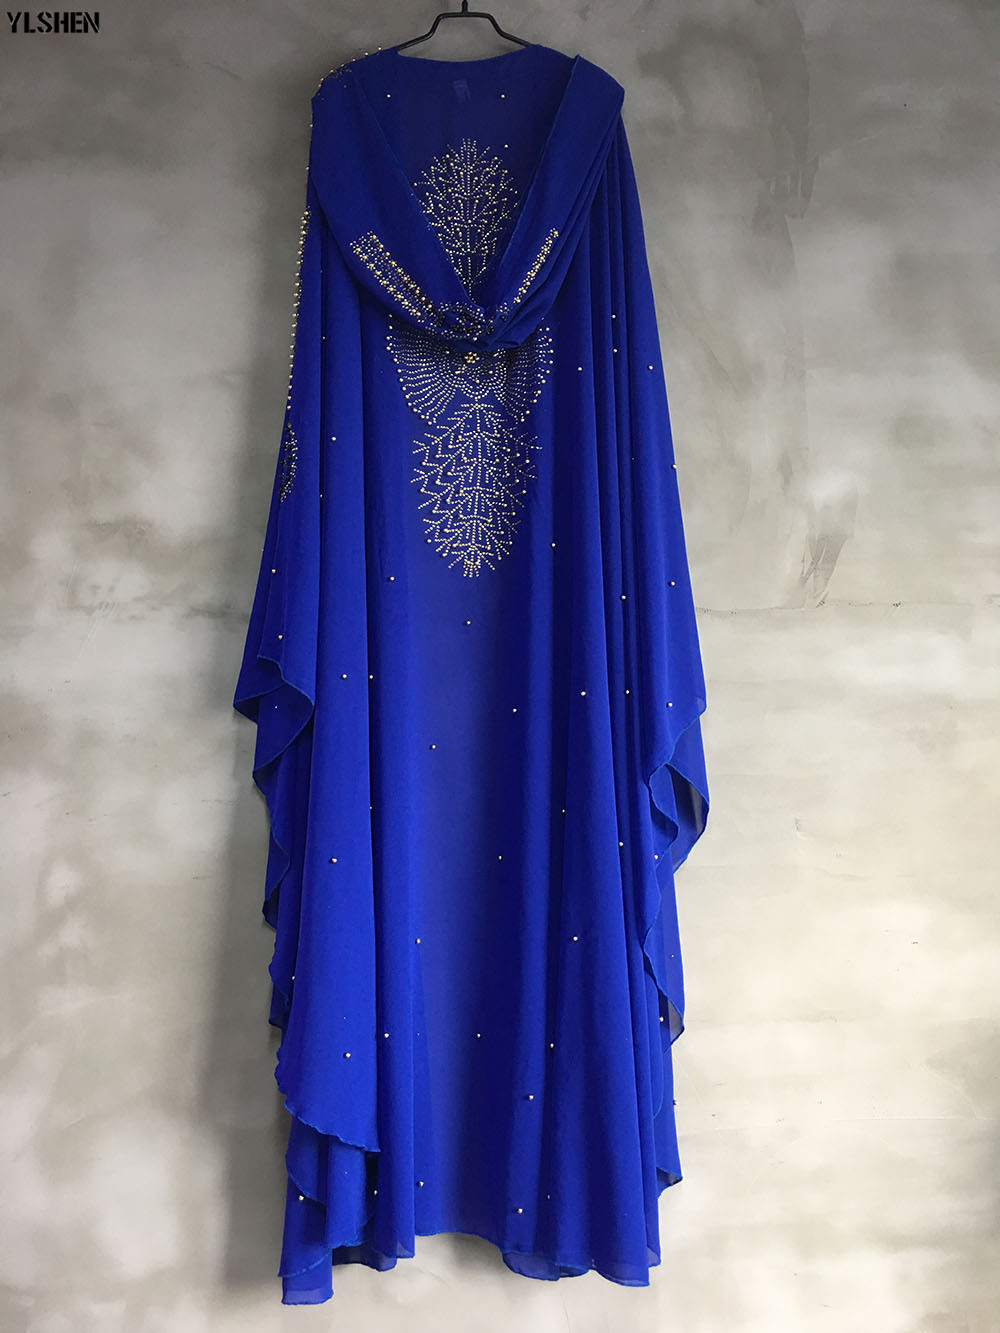 Plus Size African Dresses for Women Dashiki Diamond Beads African Clothes Abaya Dubai Robe Evening Long Muslim Dress Hooded Cape 24